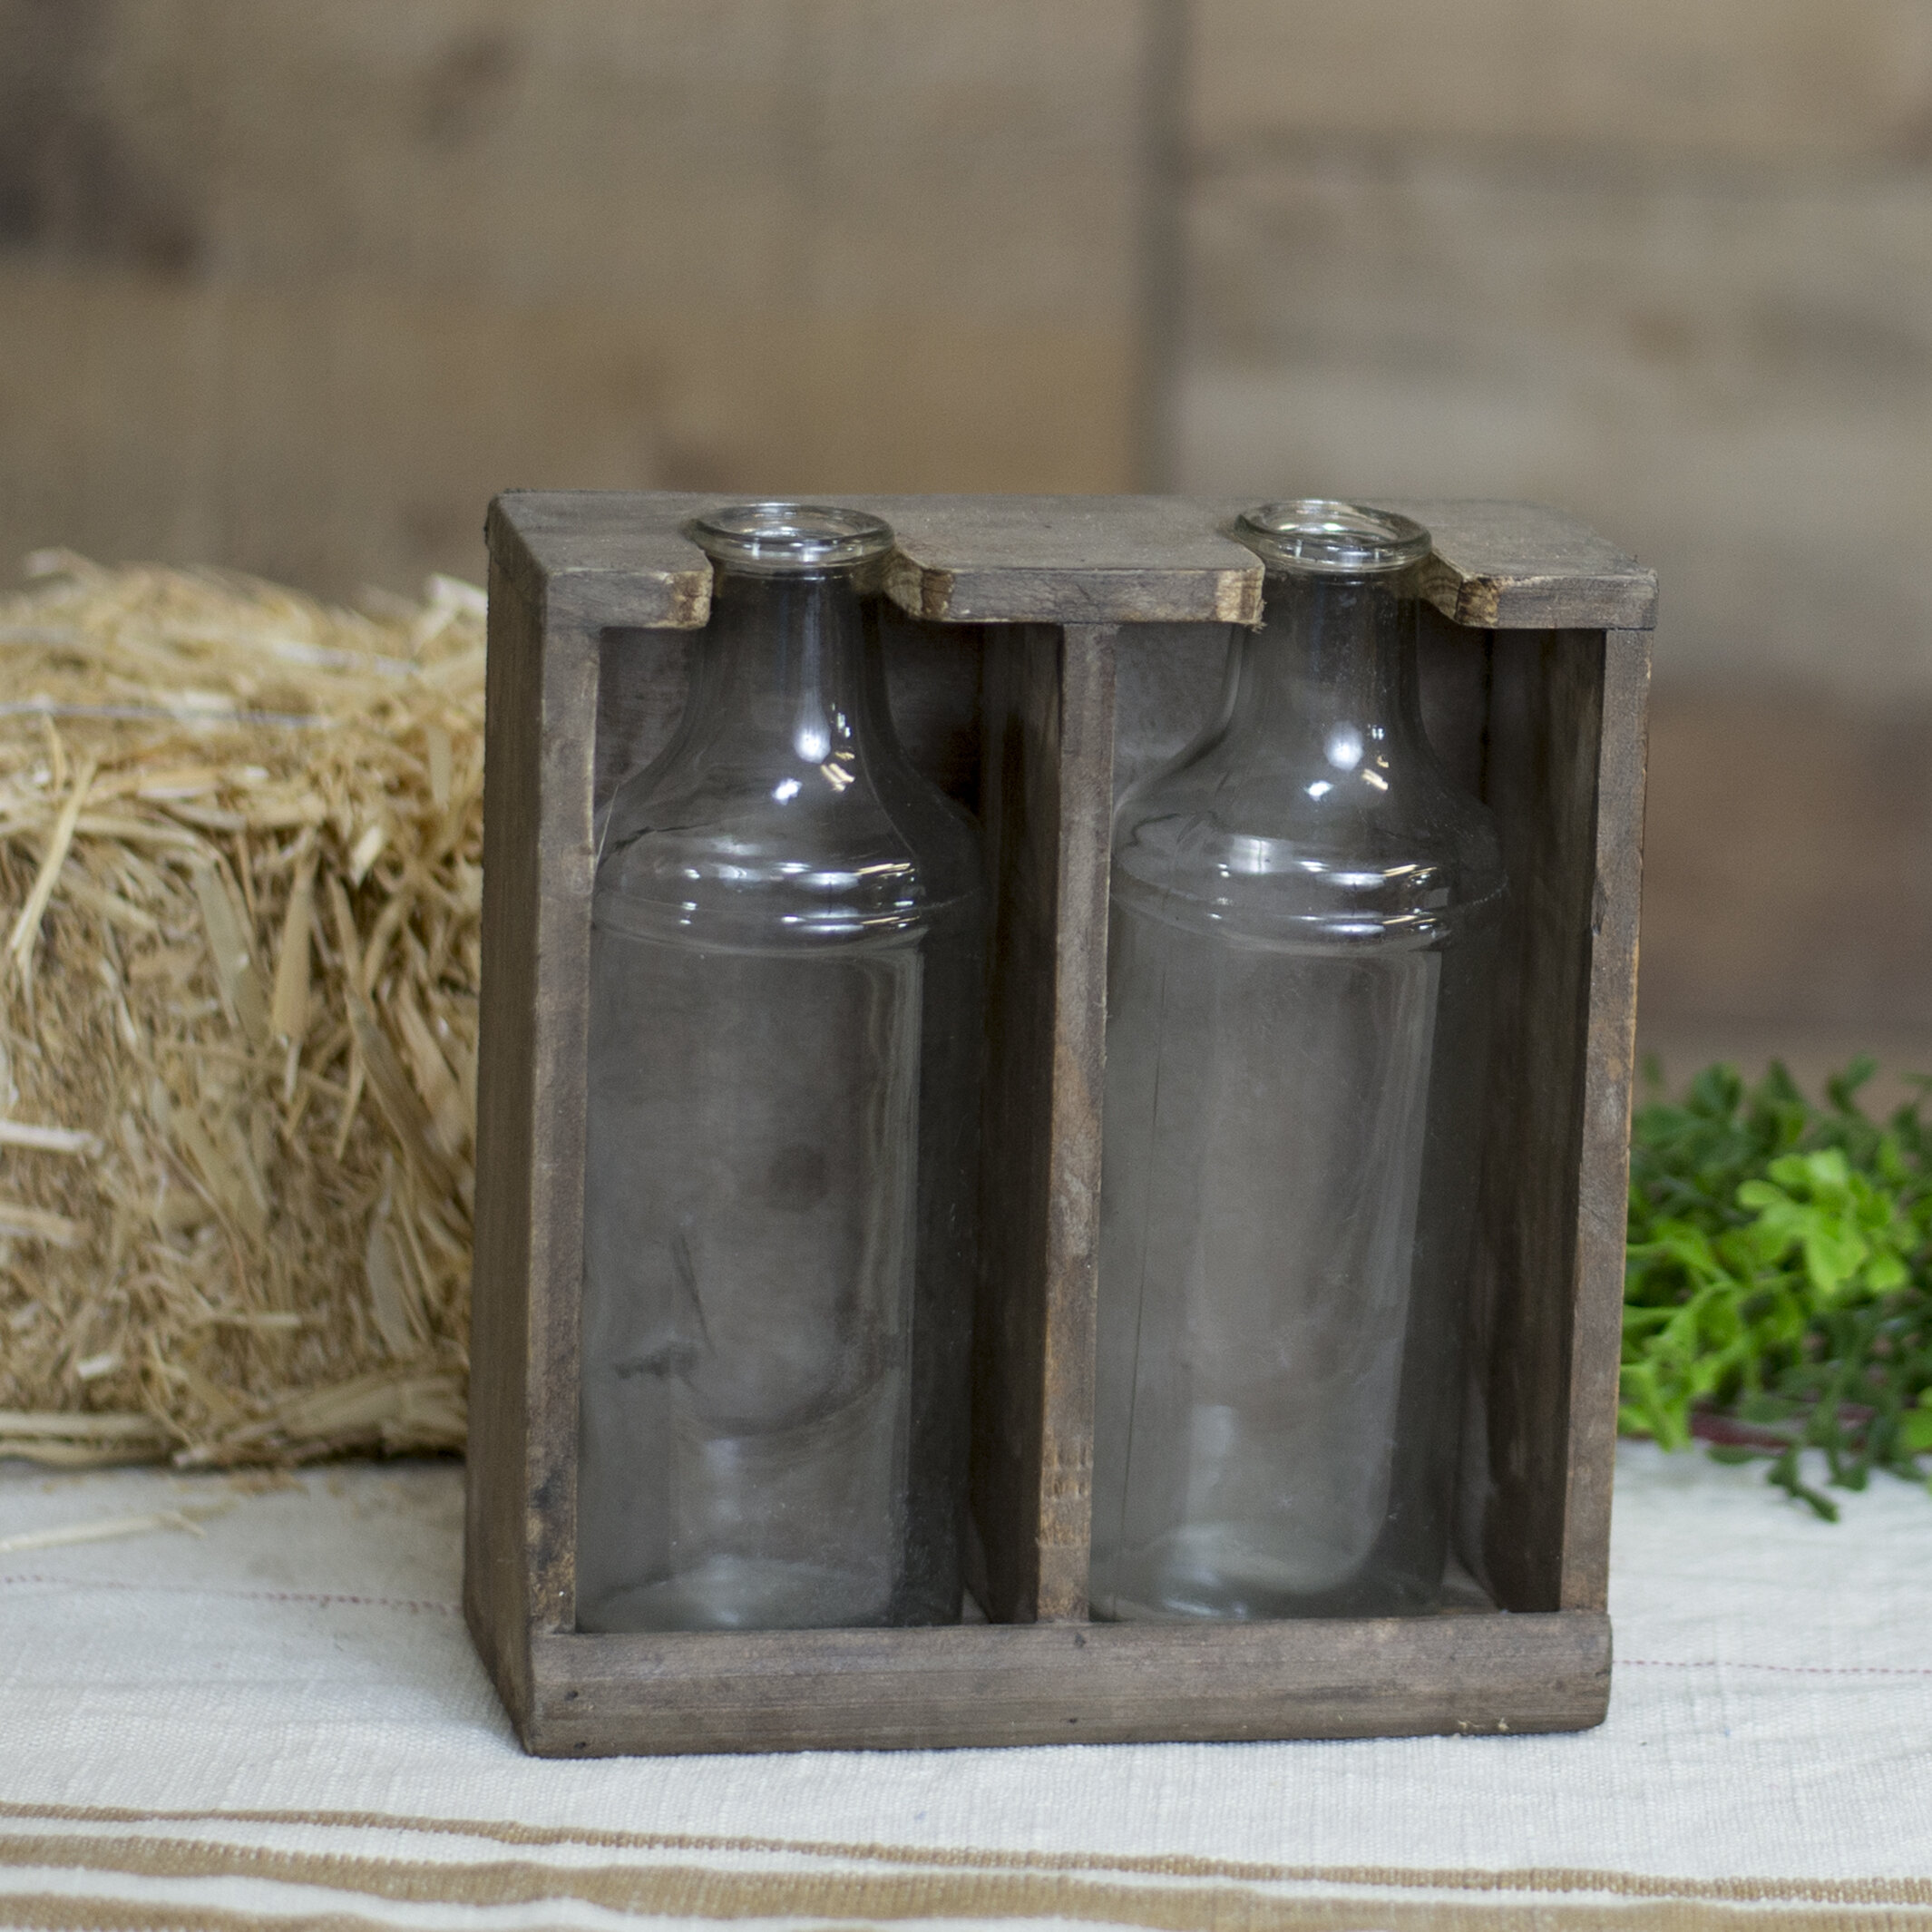 midnight just decorating velvet tones bottles in blog at with find home decor your shot pm earth colored create or decorative screen serenity pieces inspiring